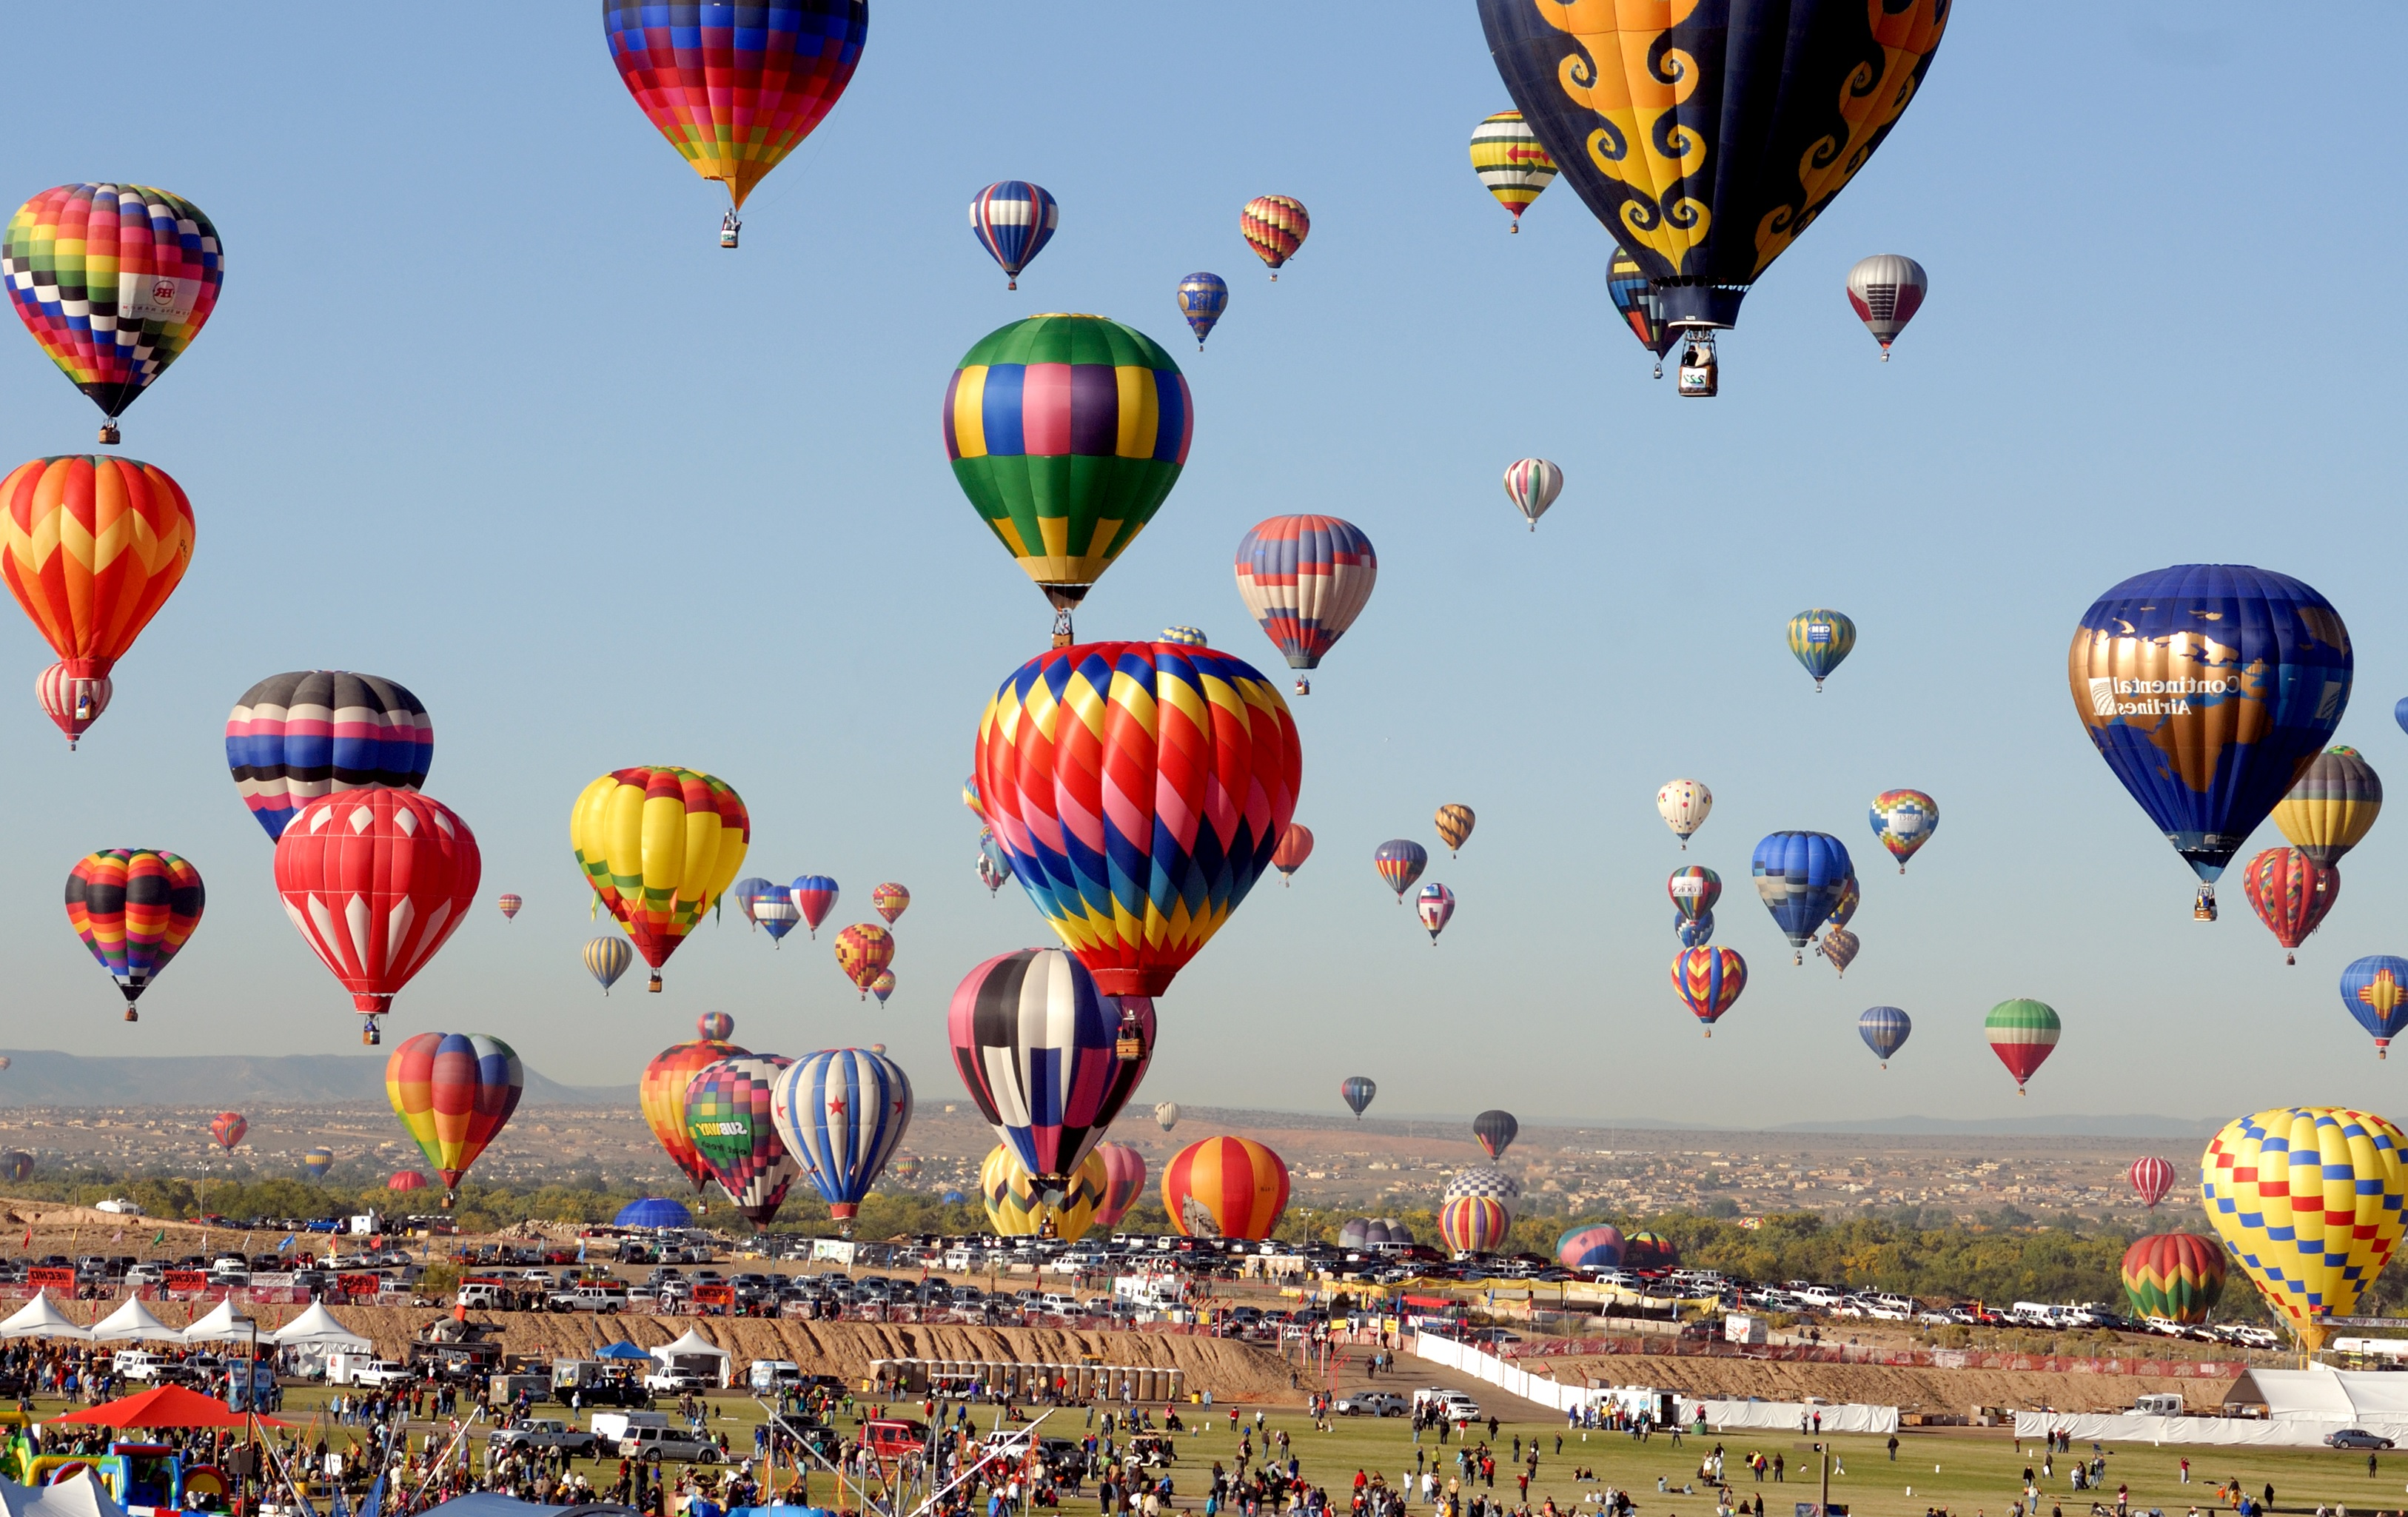 Southwest Balloon Festival, Albuquerque